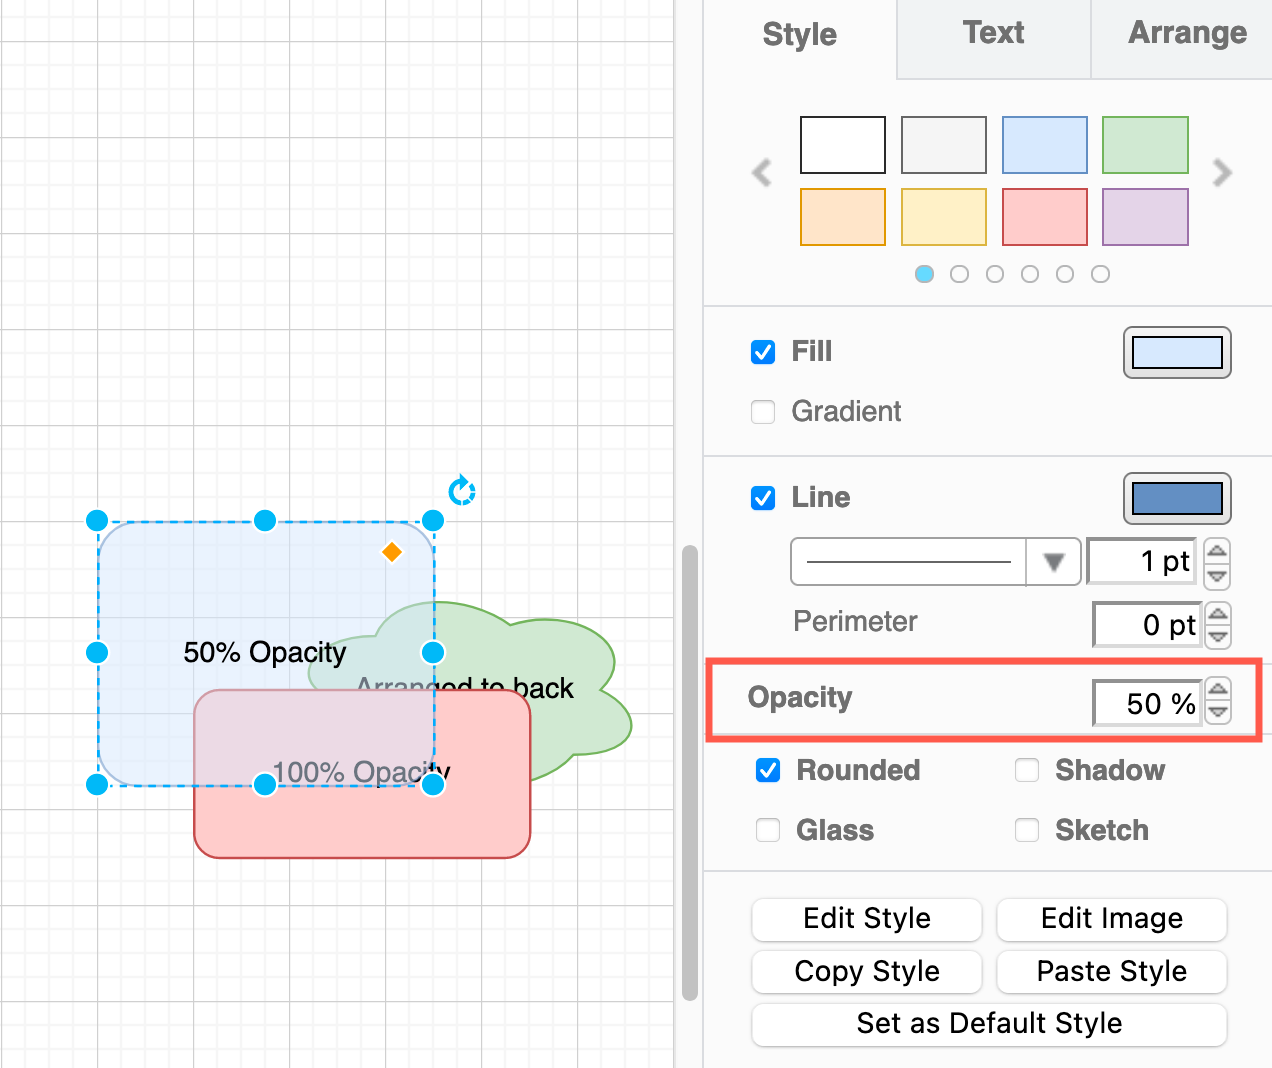 Set a new value for Opacity to make a shape more transparent and let shapes underneath show through